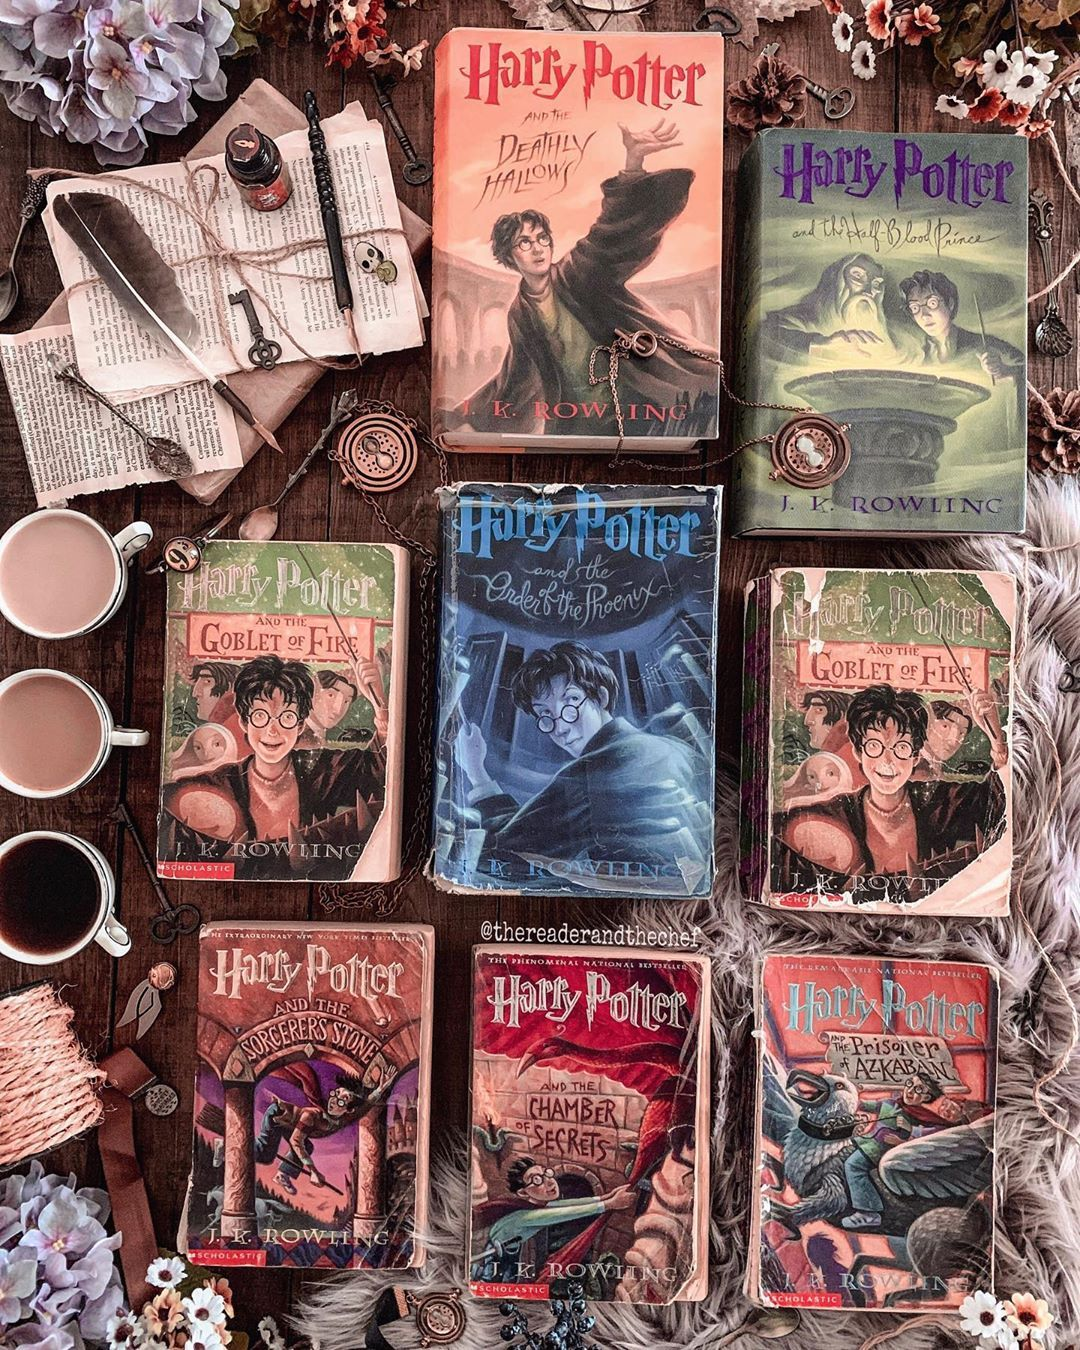 Our Old Harry Potter Books Harrypotter Potterheads Potterhead Hplove Bookis Harry Potter Illustrations Harry Potter Book Covers Harry Potter Books